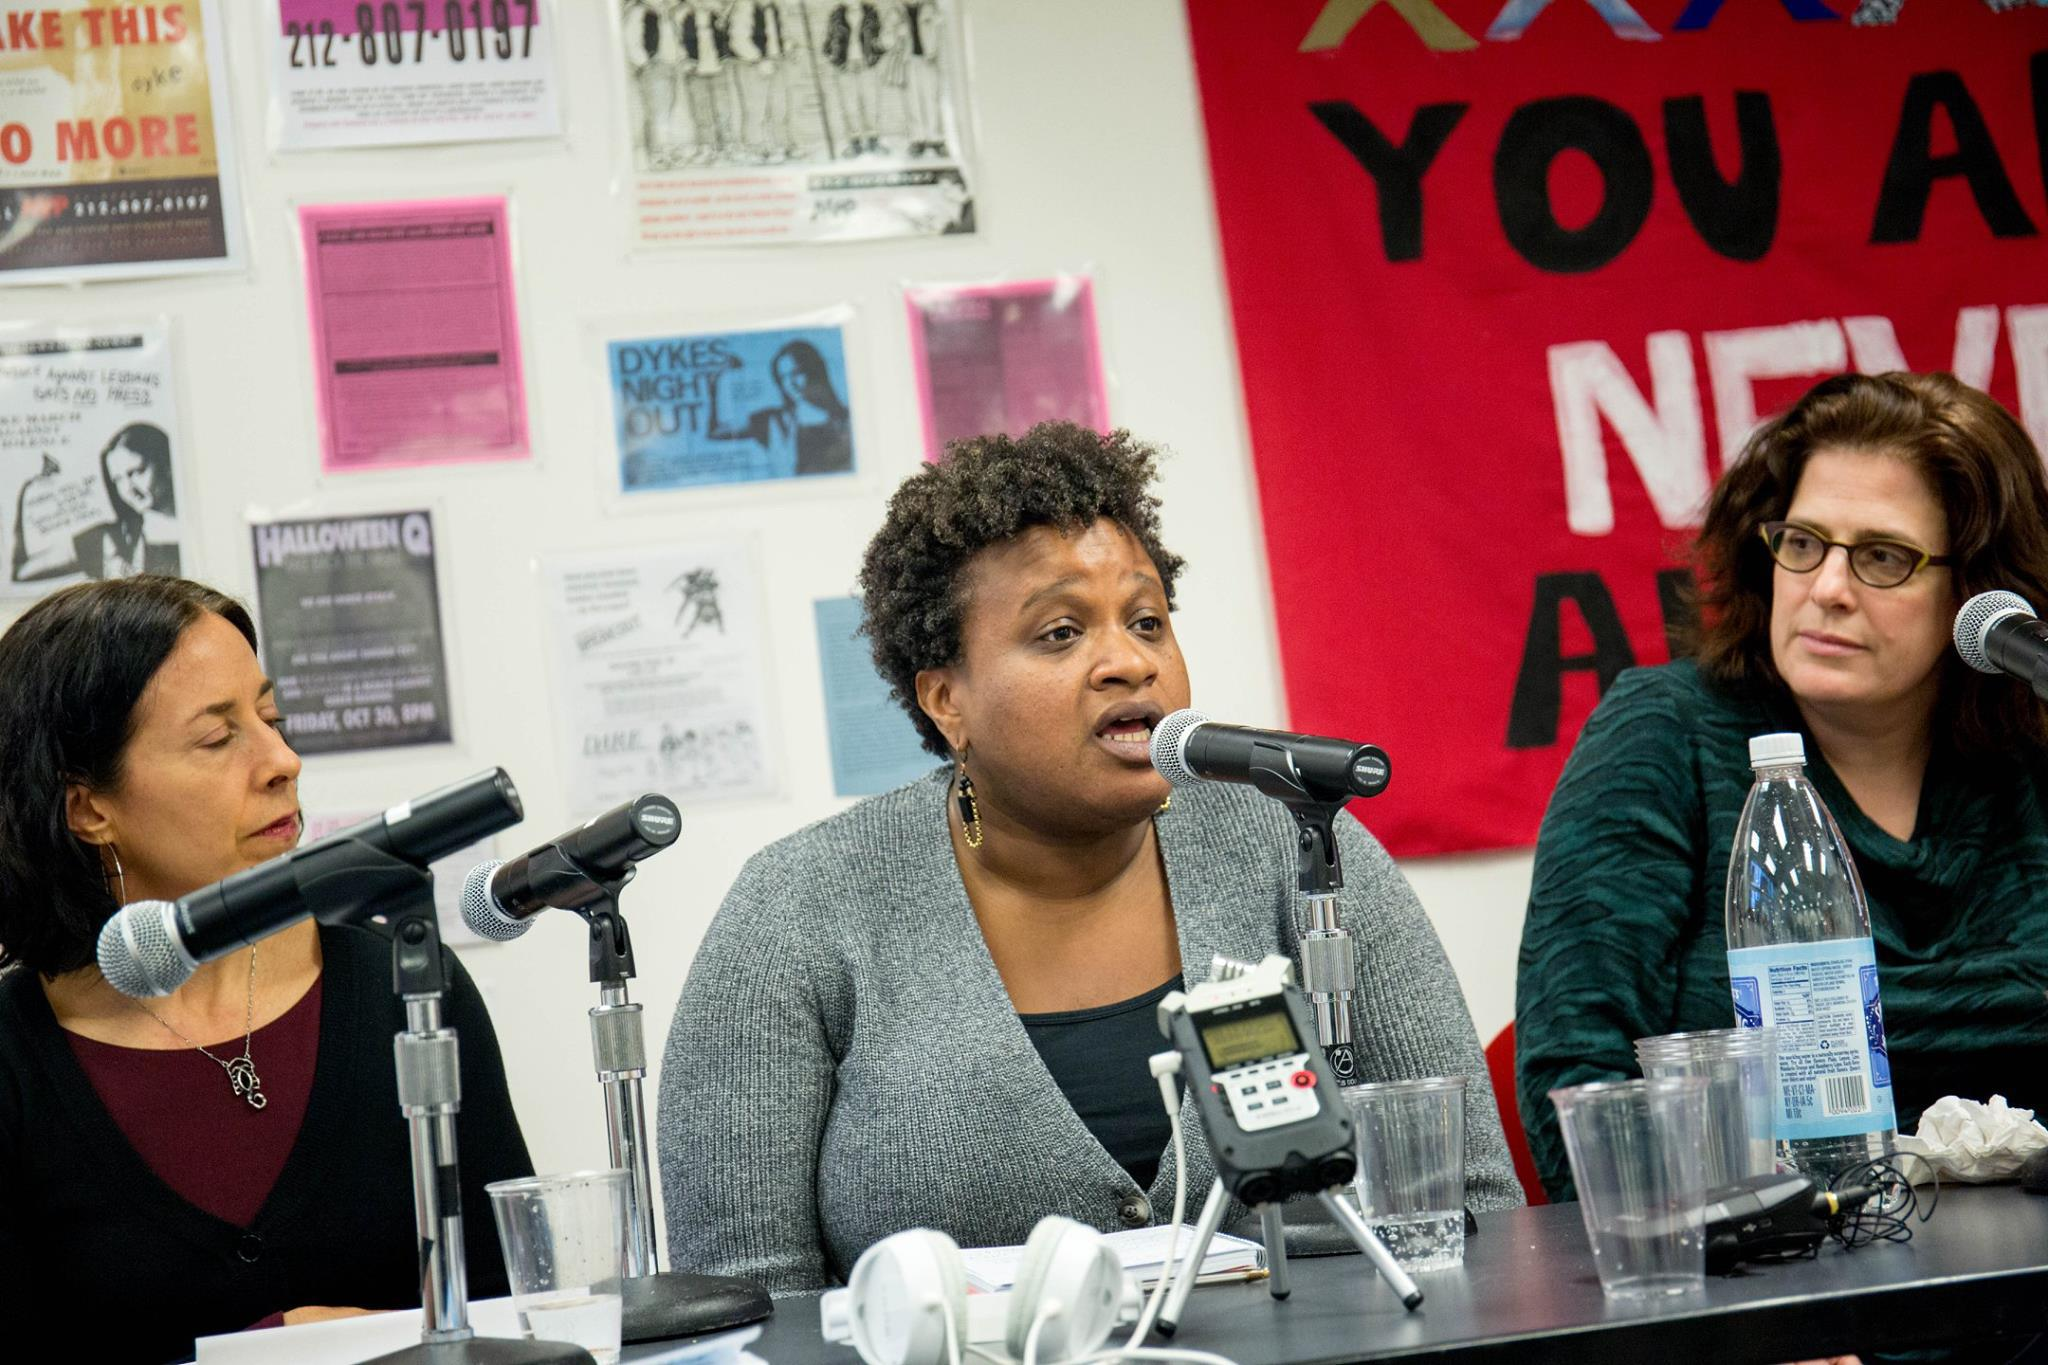 Image: Melissa Forbis (left), Erin Glasco (center) and Jennifer Brier (right) speak on the panel at the opening reception of Take Back the Fight: Resisting Sexual Violence from the Ground Up at Pop-Up JUST Art Gallery April 2018. Erin Glasco, wearing a black shirt and gray sweater, speaks as Melissa Forbis and Jennifer Brier listen and watch beside her. Photo by Ireashia Bennett.